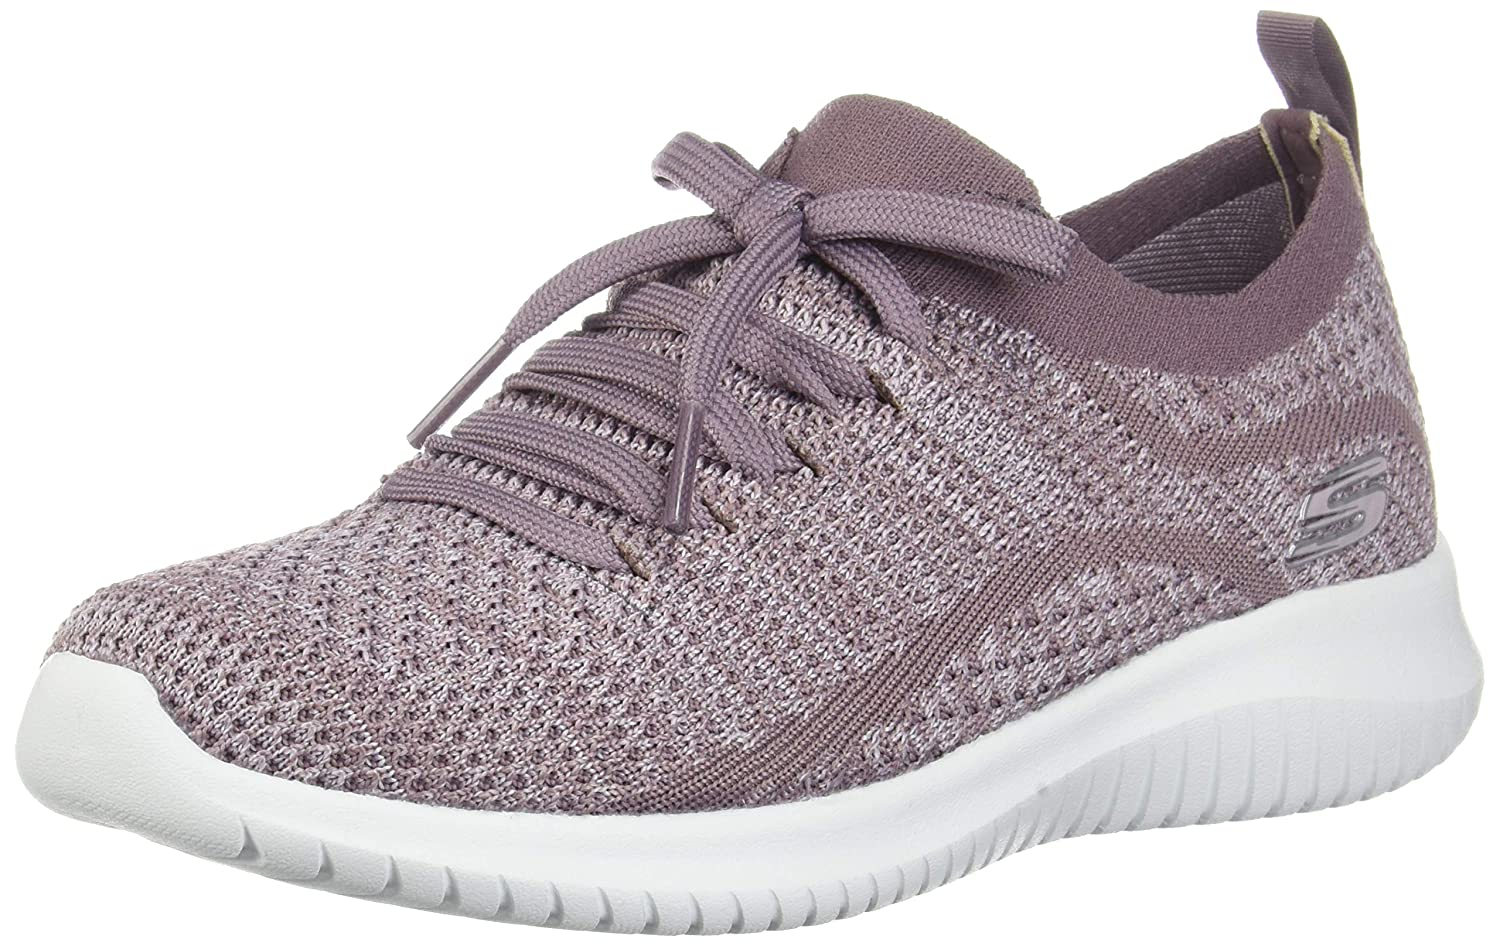 Skechers Damen Ultra Flex Statements Turnschuhe